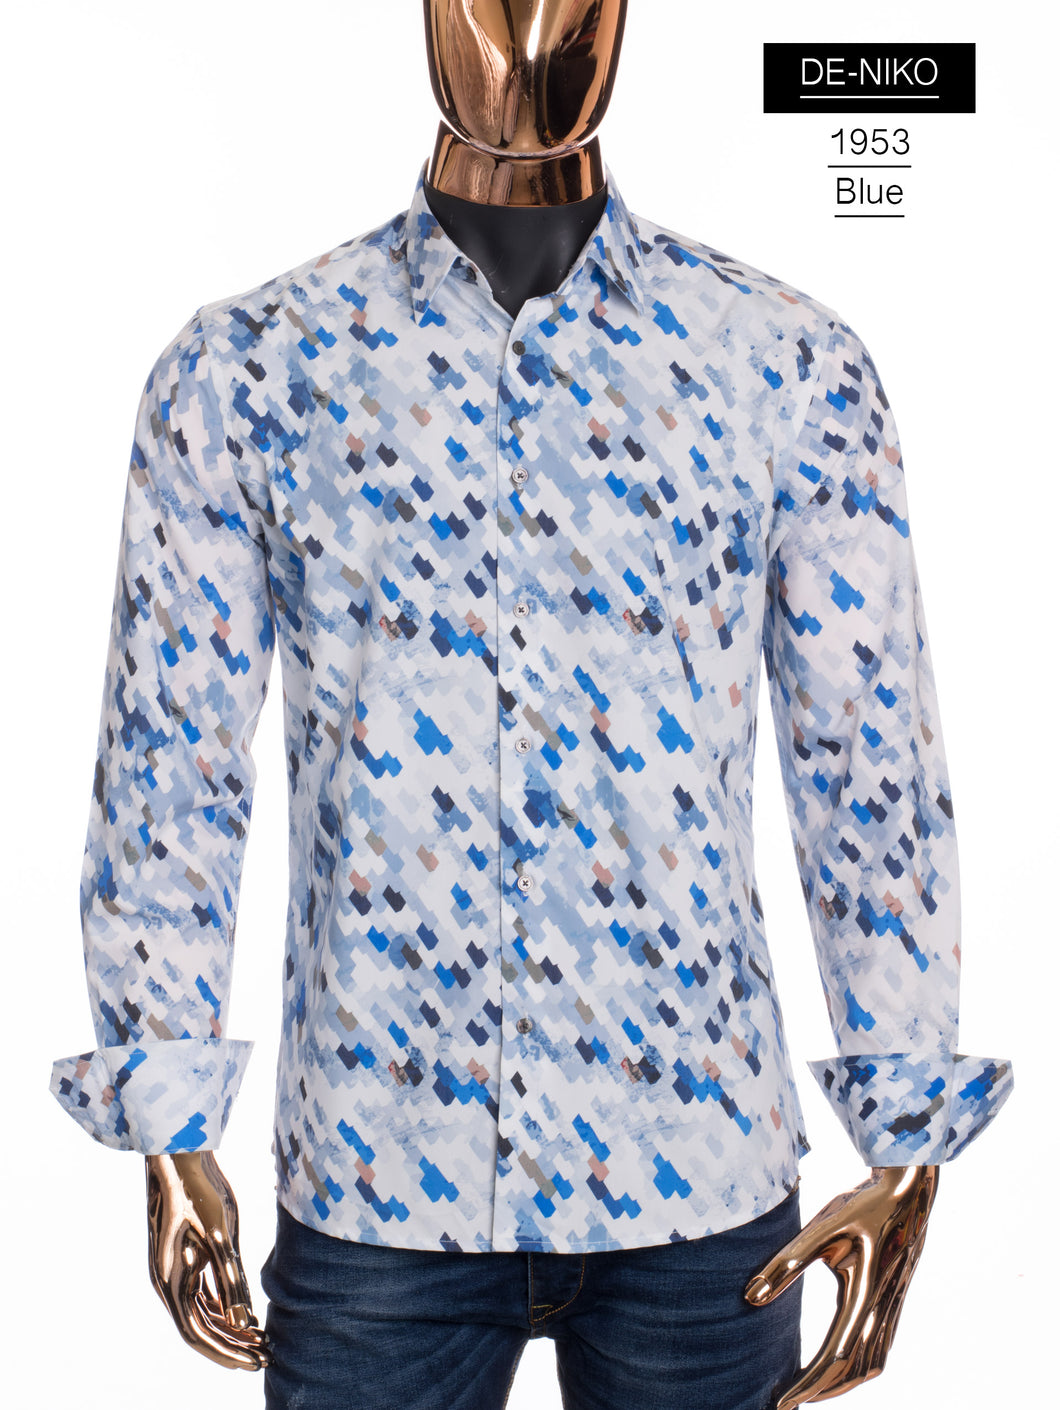 De-Niko White Button Up Retro Diagonal Pattern Dress Shirt